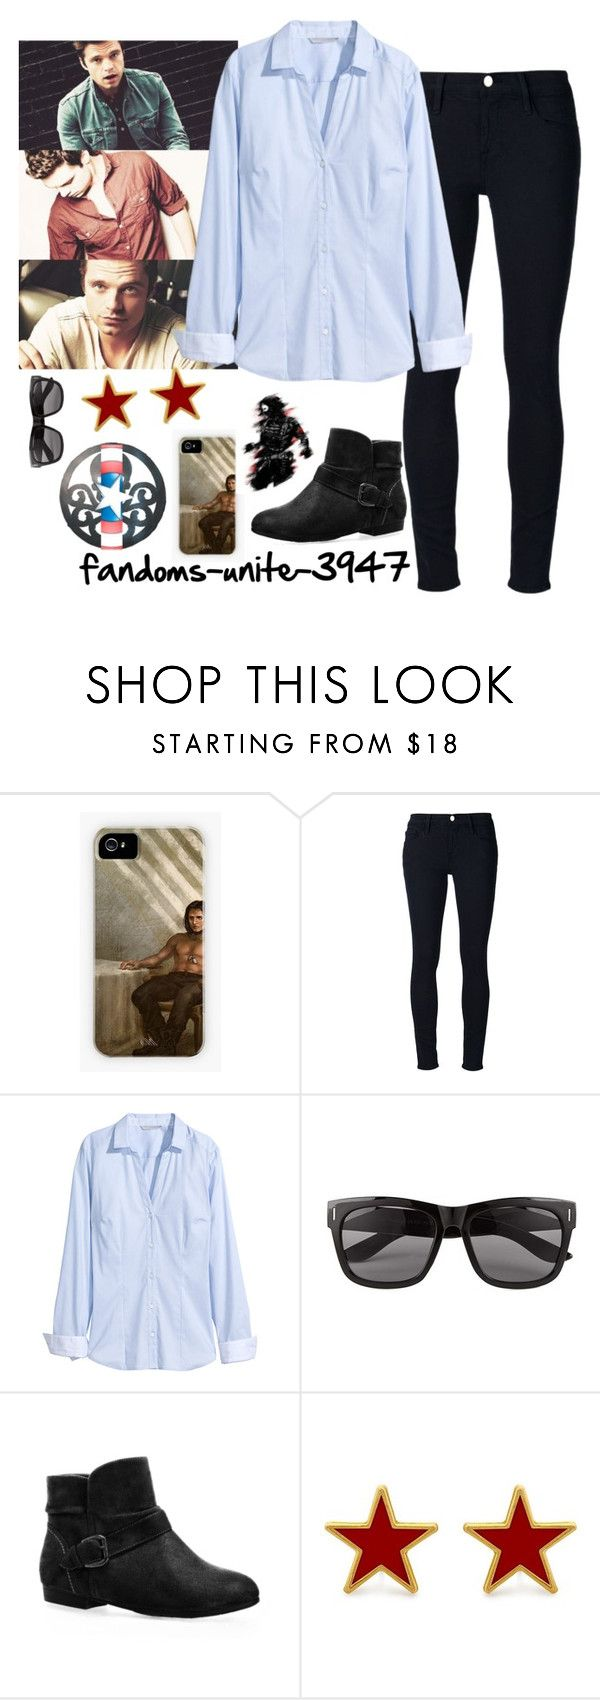 """Happy Birthday Sebastian!!!!!!!!"" by fandoms-unite-3947 ❤ liked on Polyvore featuring Mode, Frame Denim, Sebastian Professional, H&M, Vero Moda, Avenue und George & Laurel"